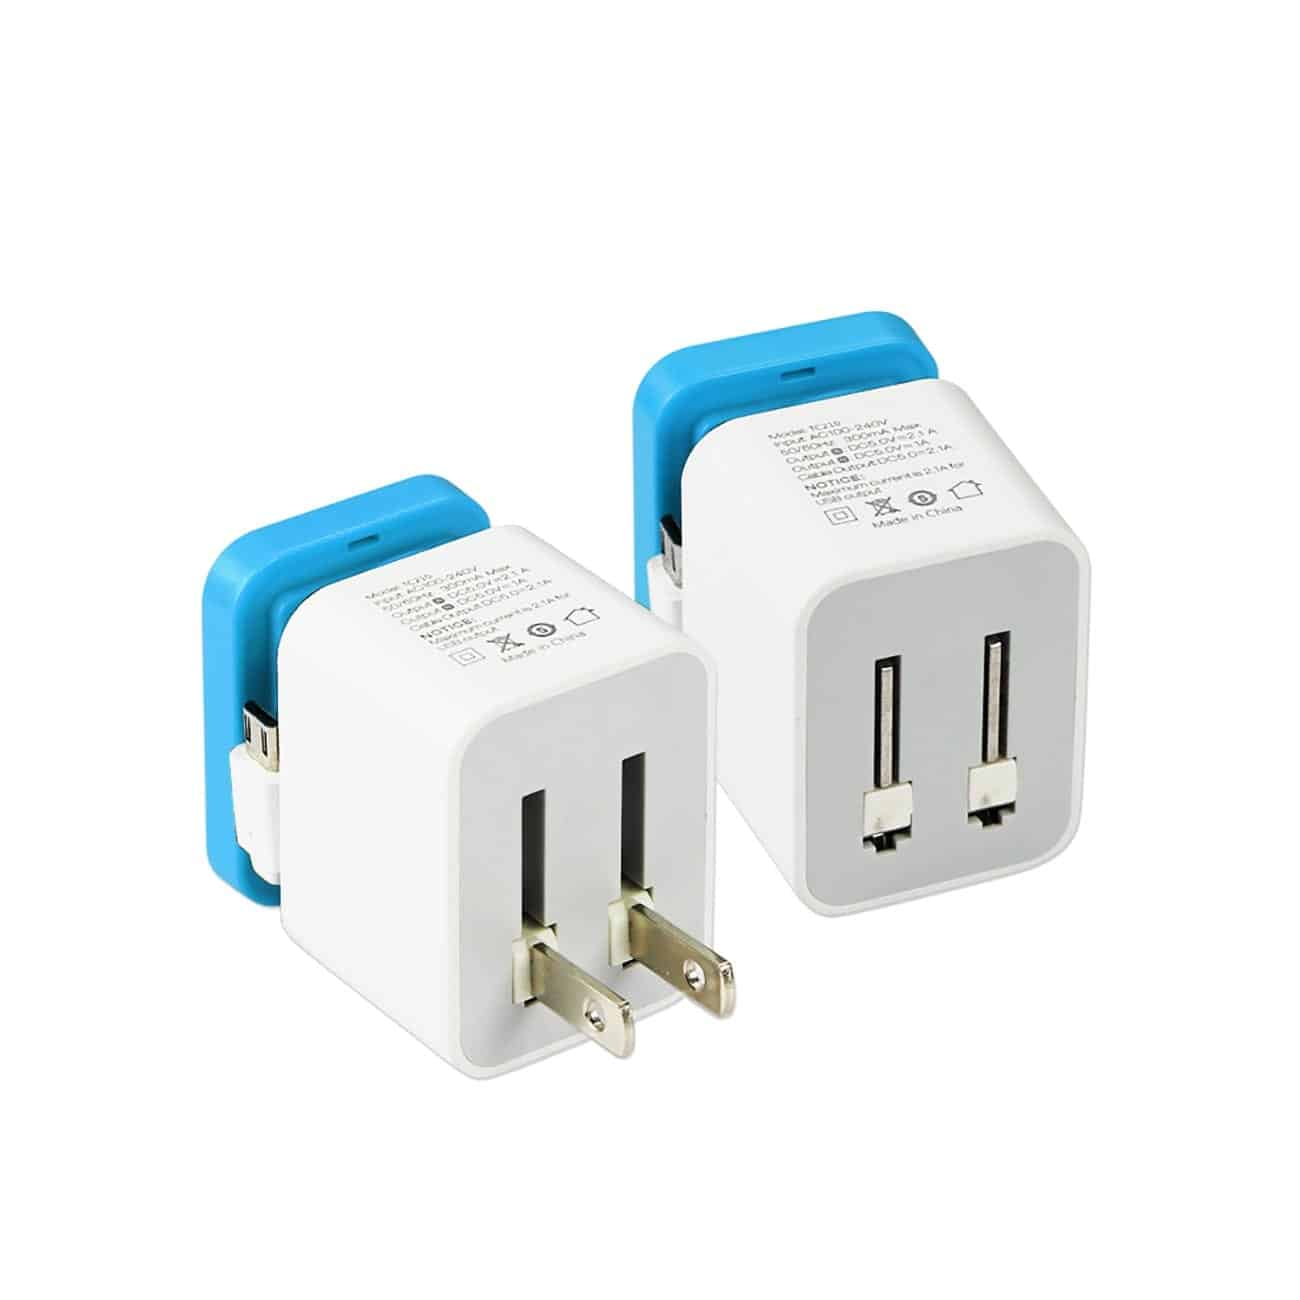 2 AMP DUAL PORT PORTABLE TRAVEL ADAPTER CHARGER IN BLUE